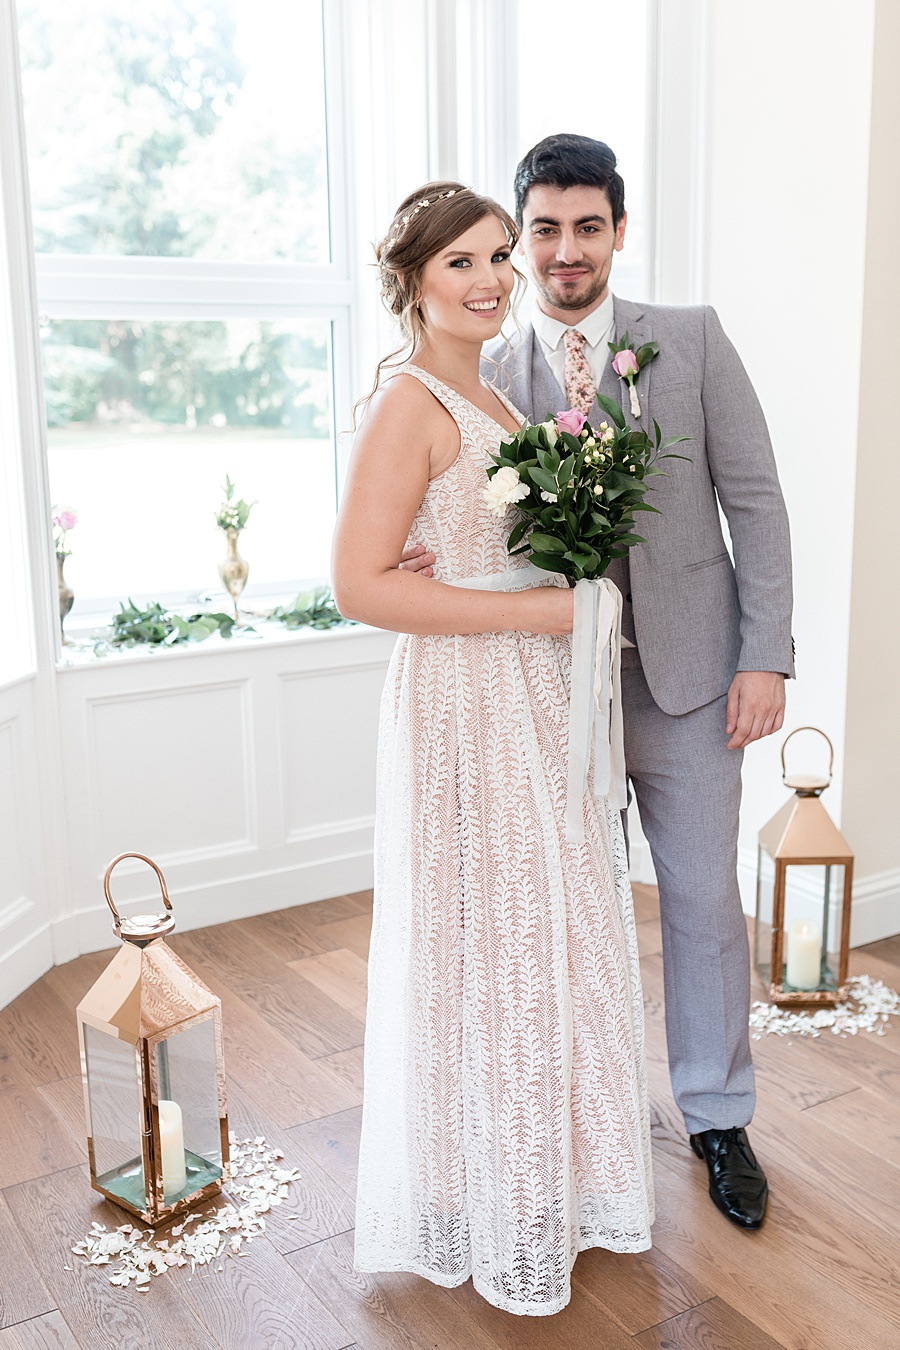 Neutral organic and minimal wedding style ideas from Kingsdown Rectory. Styling Your Wedding Your Way Images Kate Hennessey Photography (14)